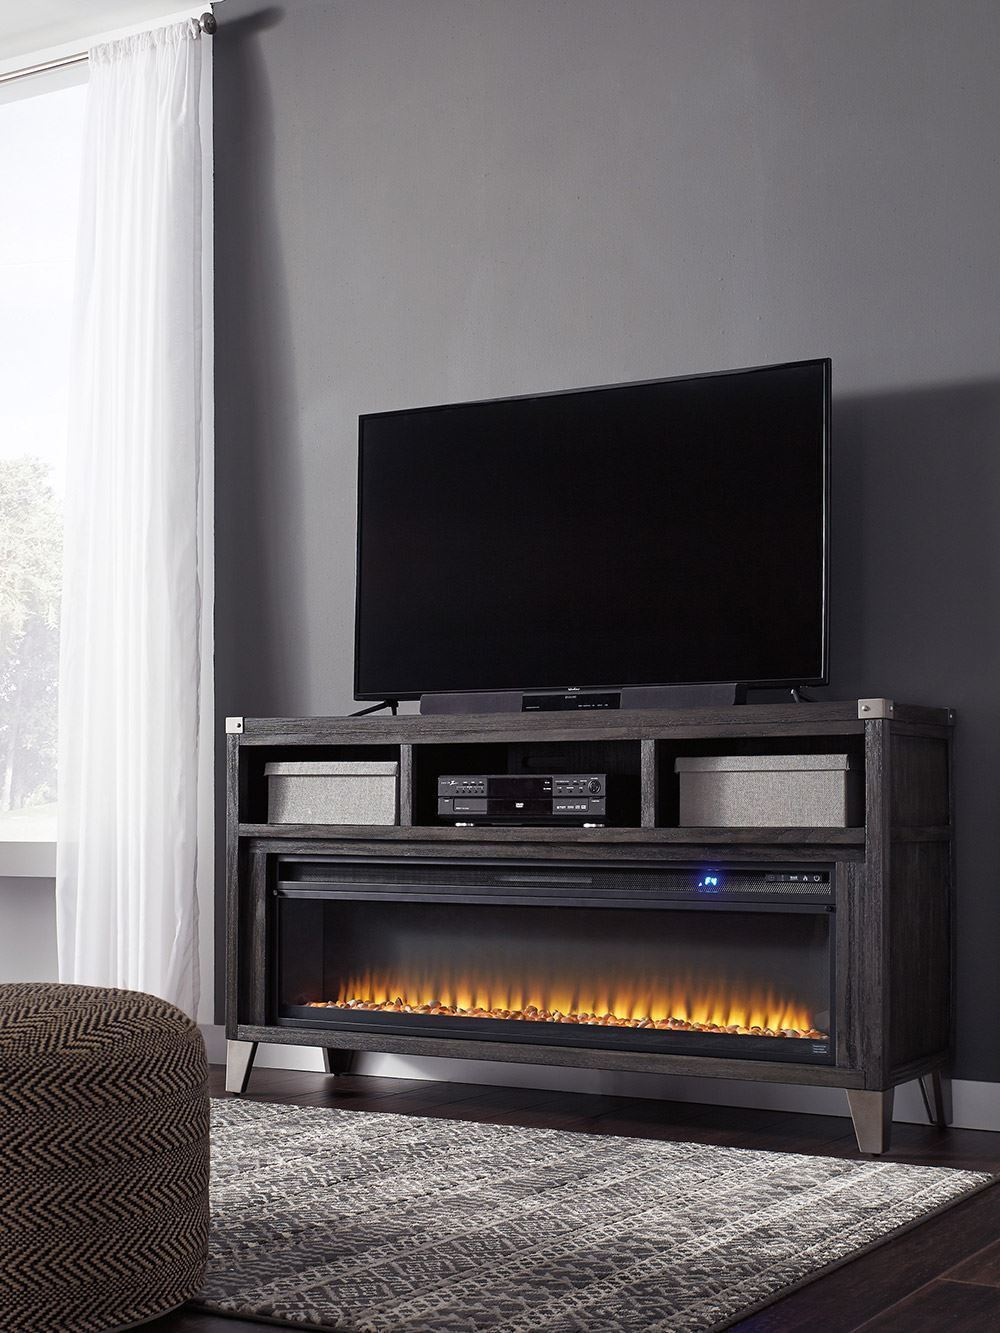 Cherry Fireplace Tv Stand Best Of todoe Tv Stand with Fireplace Insert